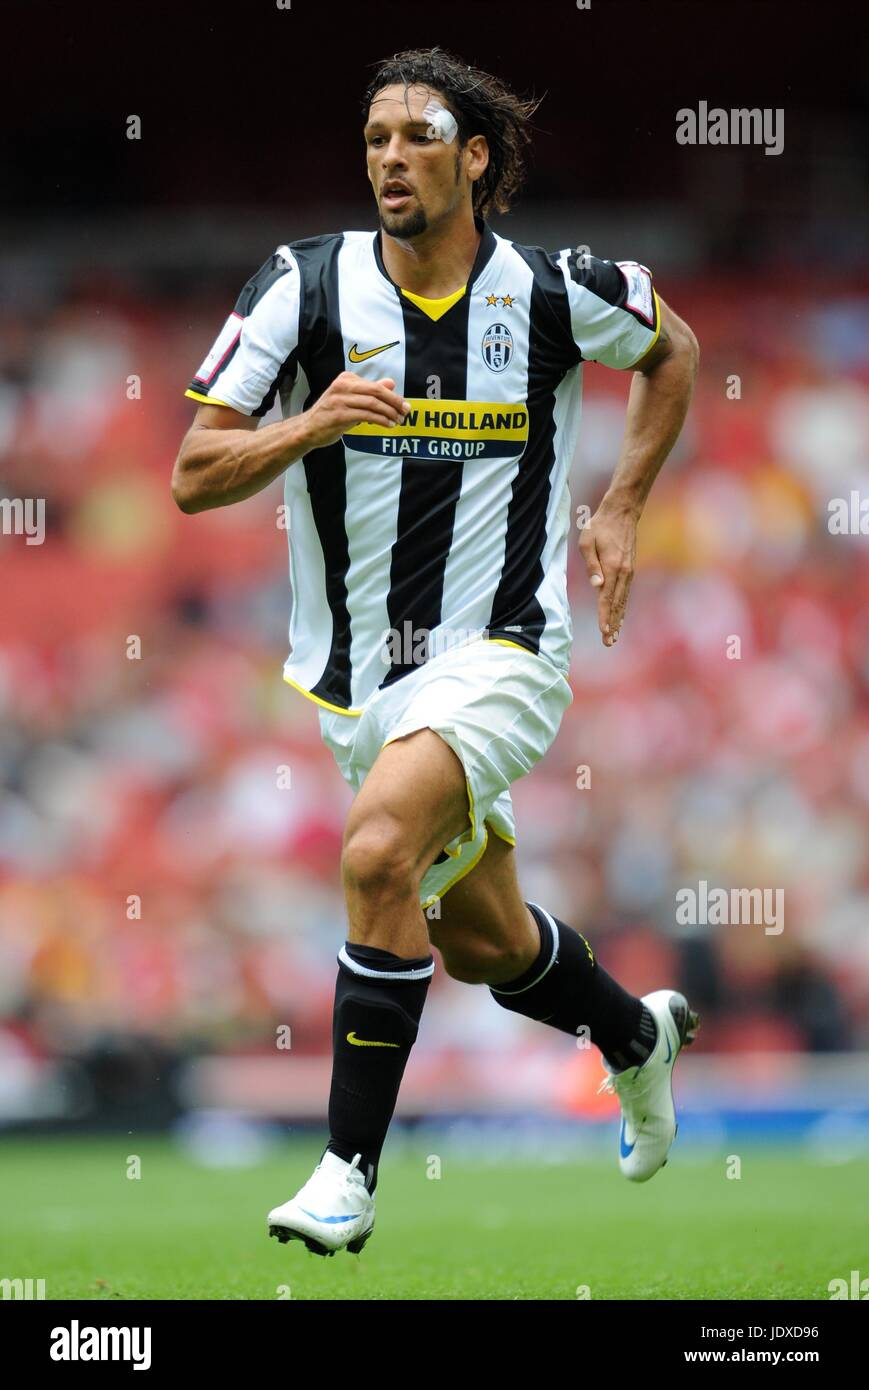 CARVALHO DE OLIVERA AMAURI JUVENTUS EMIRATES STADIUM LONDON ENGLAND 03 August 2008 - Stock Image